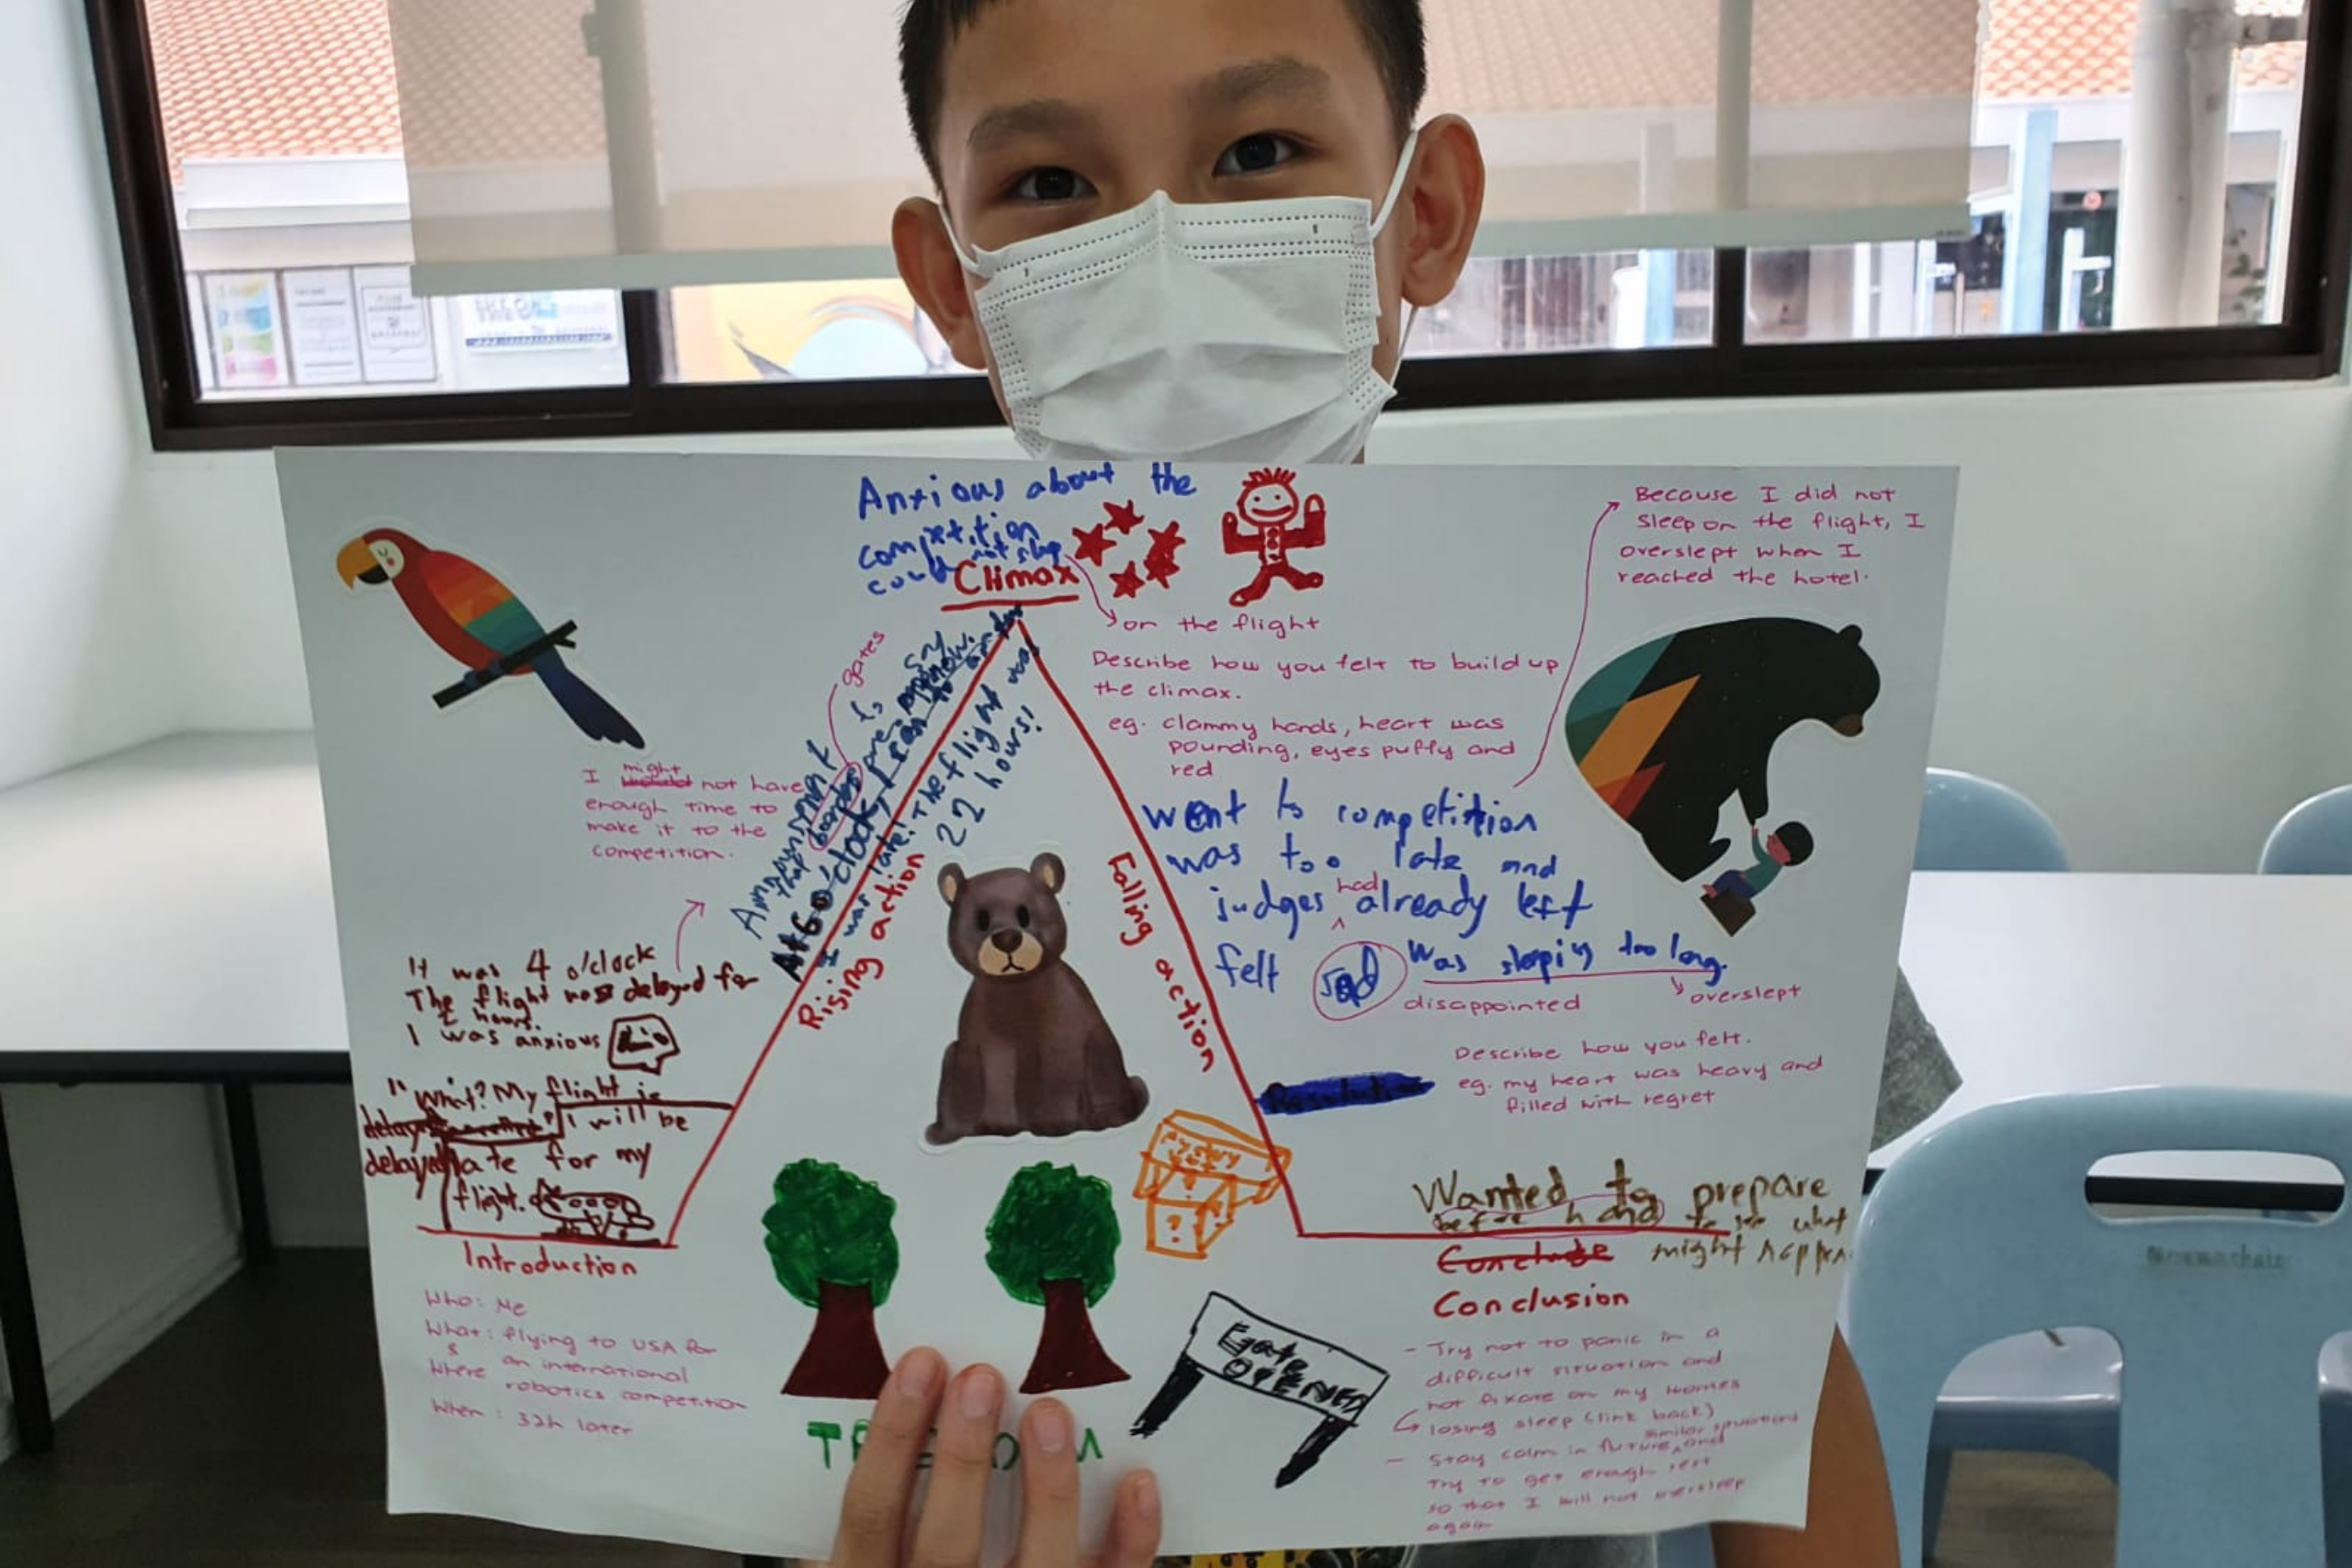 ASA student holding up a composition plan filled with colourful text and images